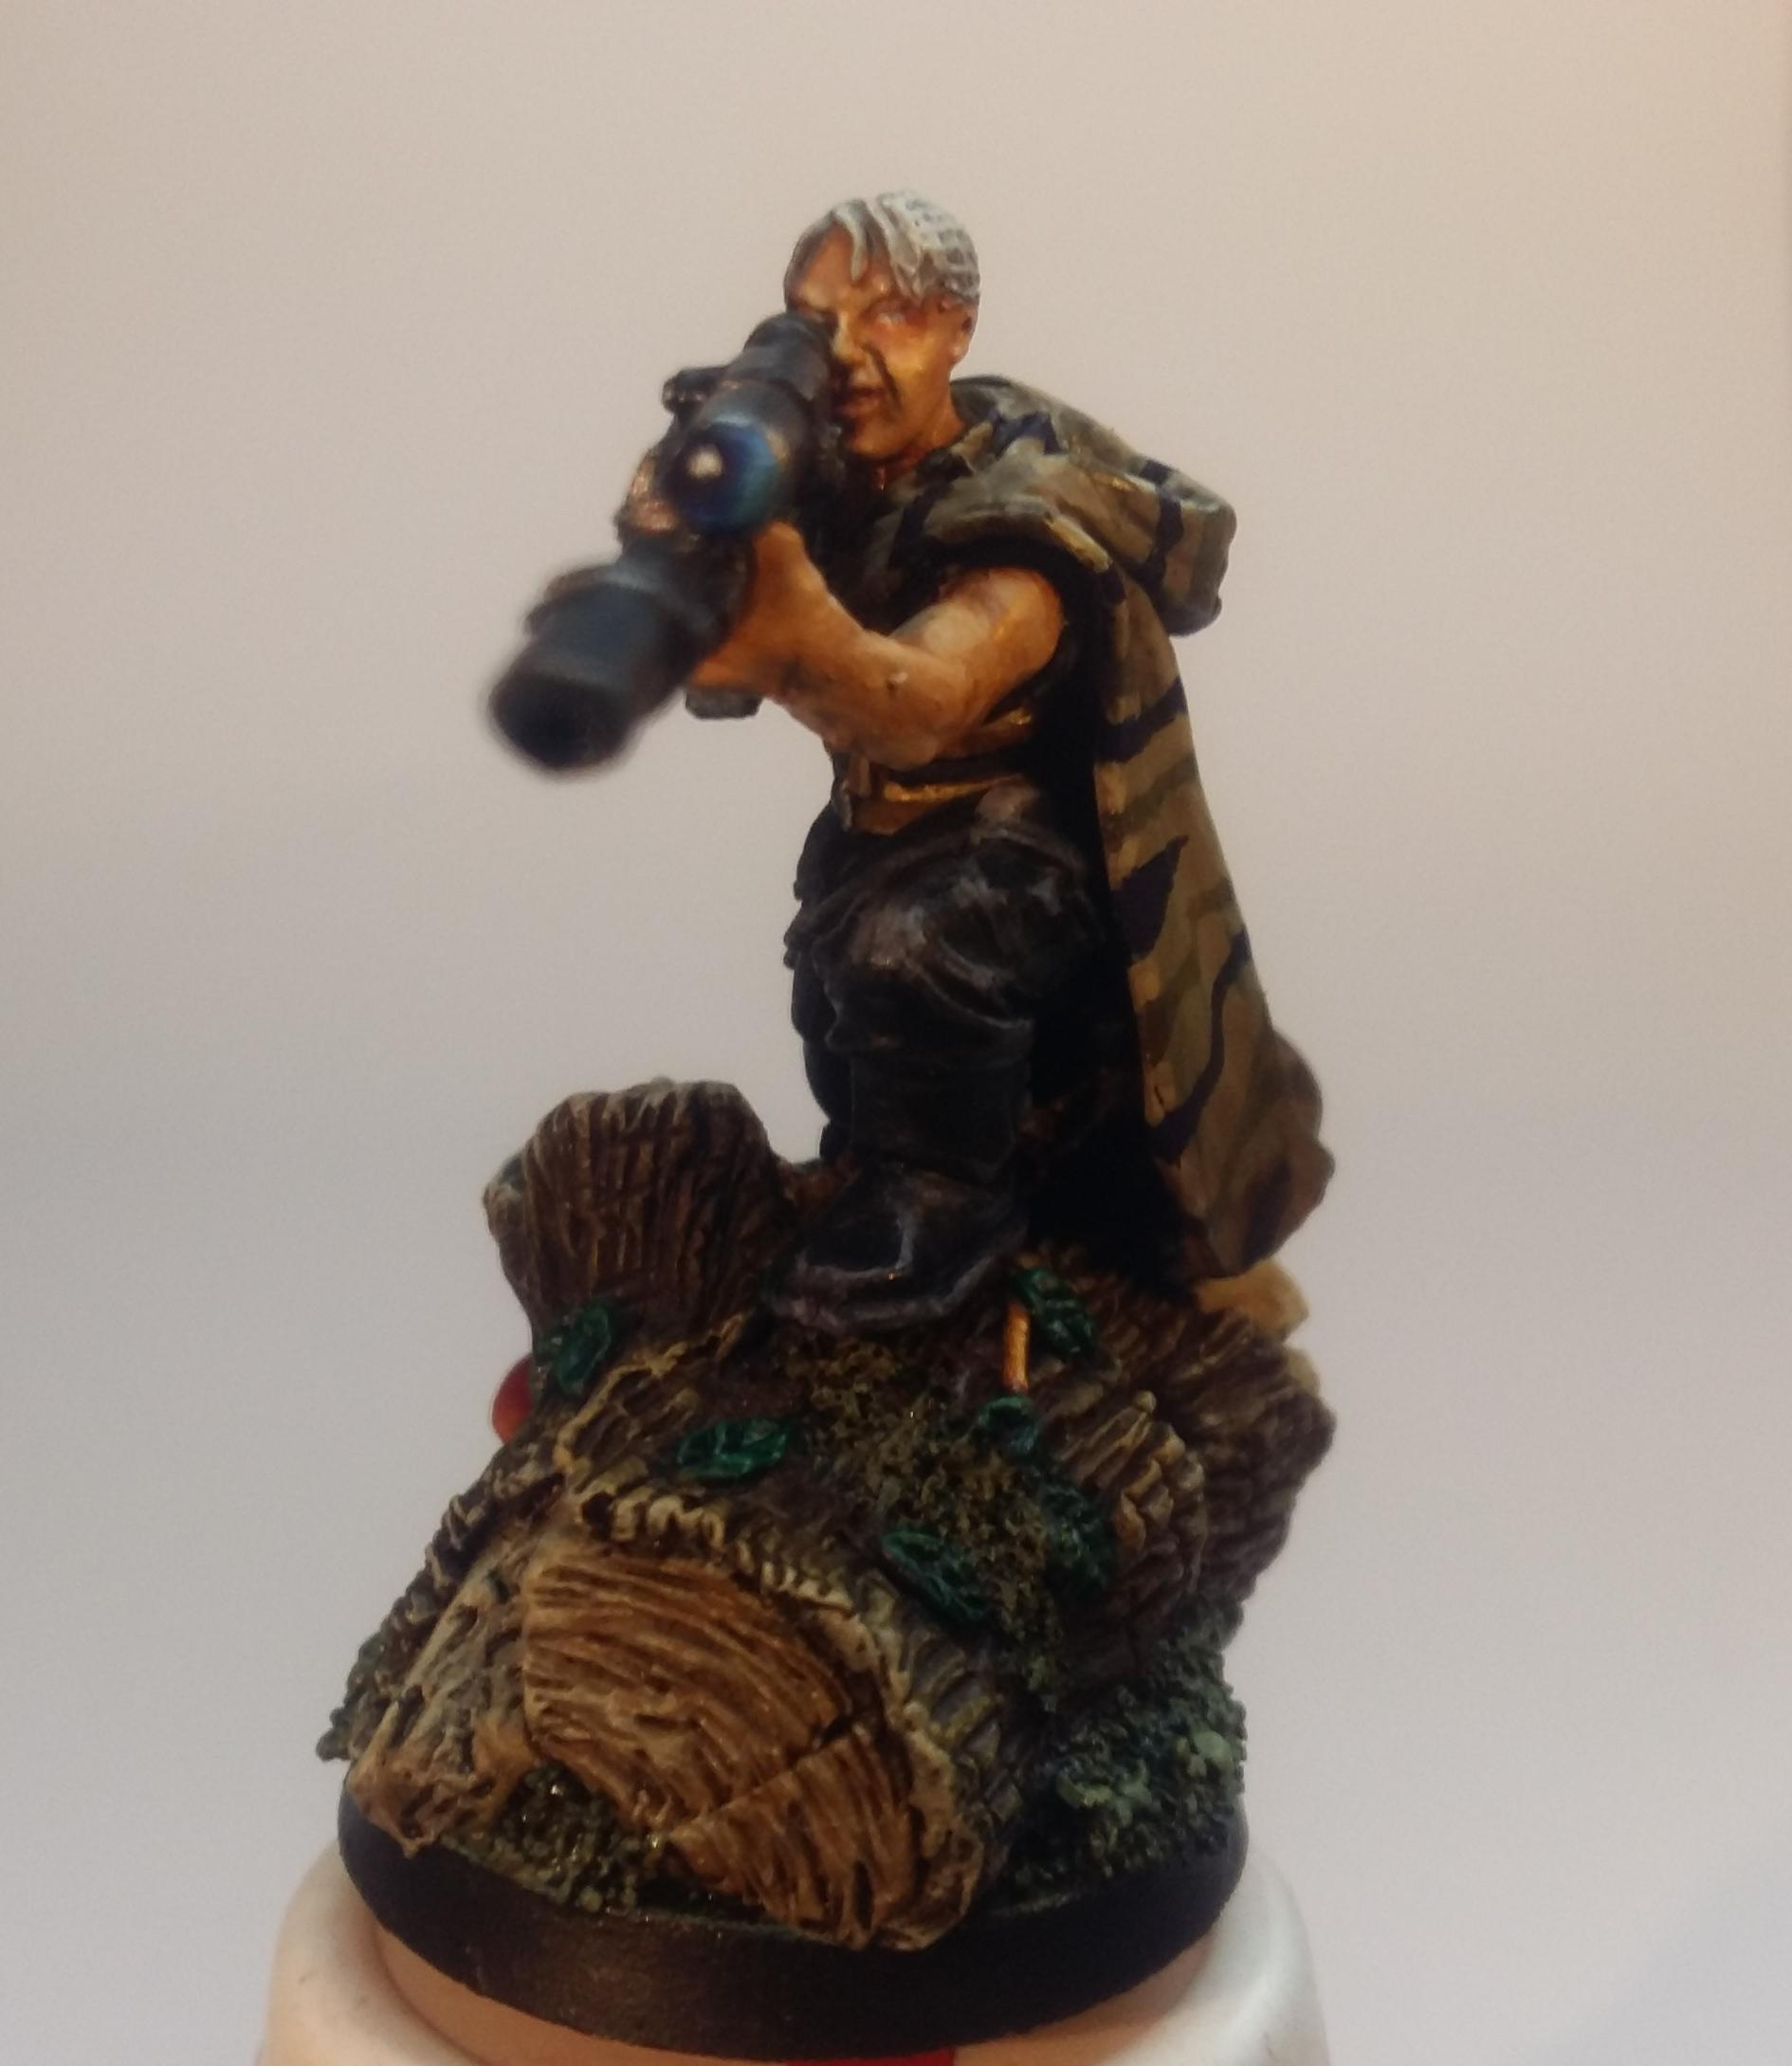 Snipers, Tanith, Tanith Sniper